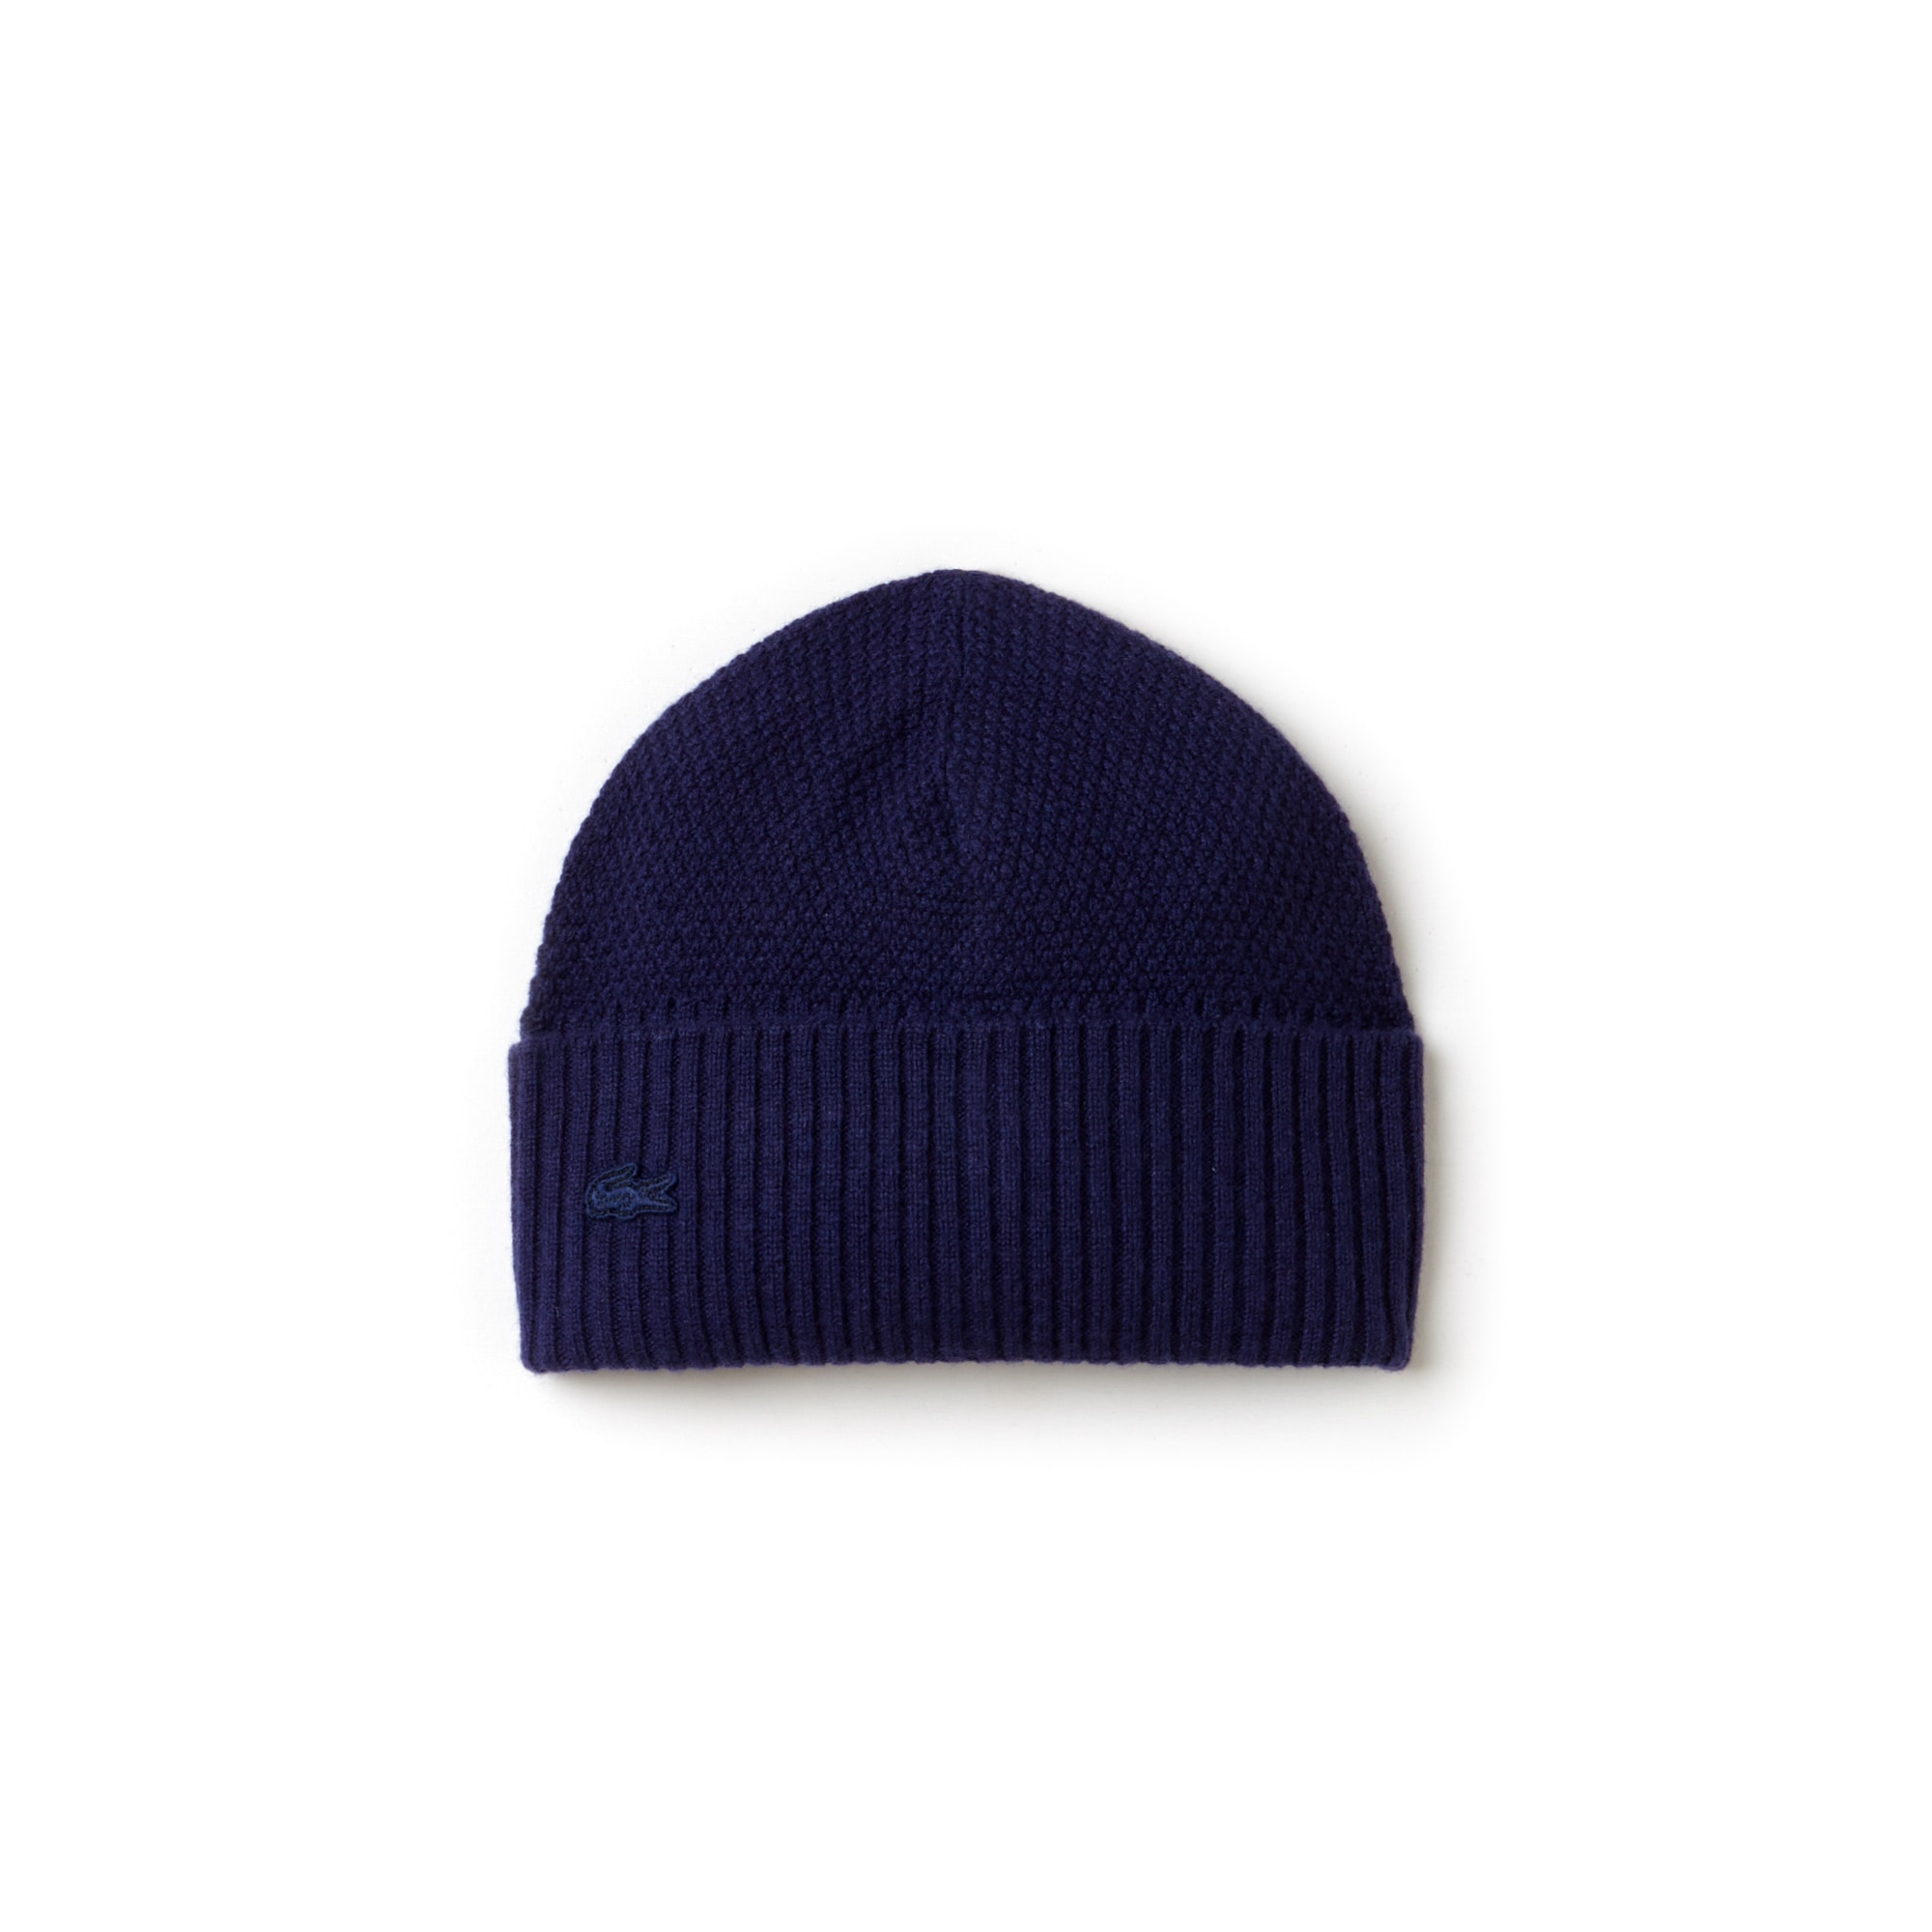 Men's Cashmere And Wool Cuffed Beanie